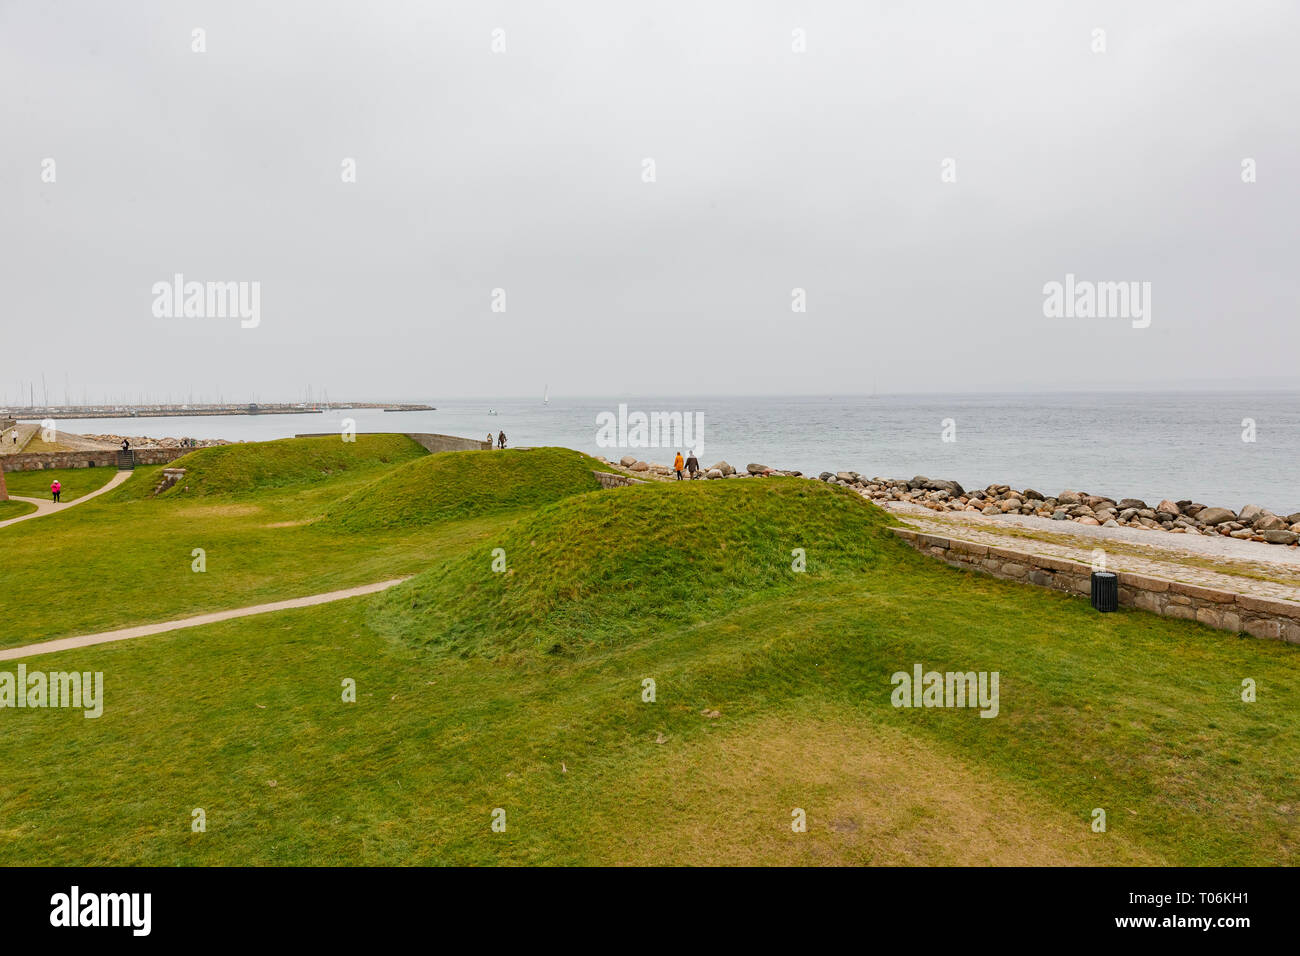 Exterior view of the famous Kronborg Castle at Denmark Stock Photo